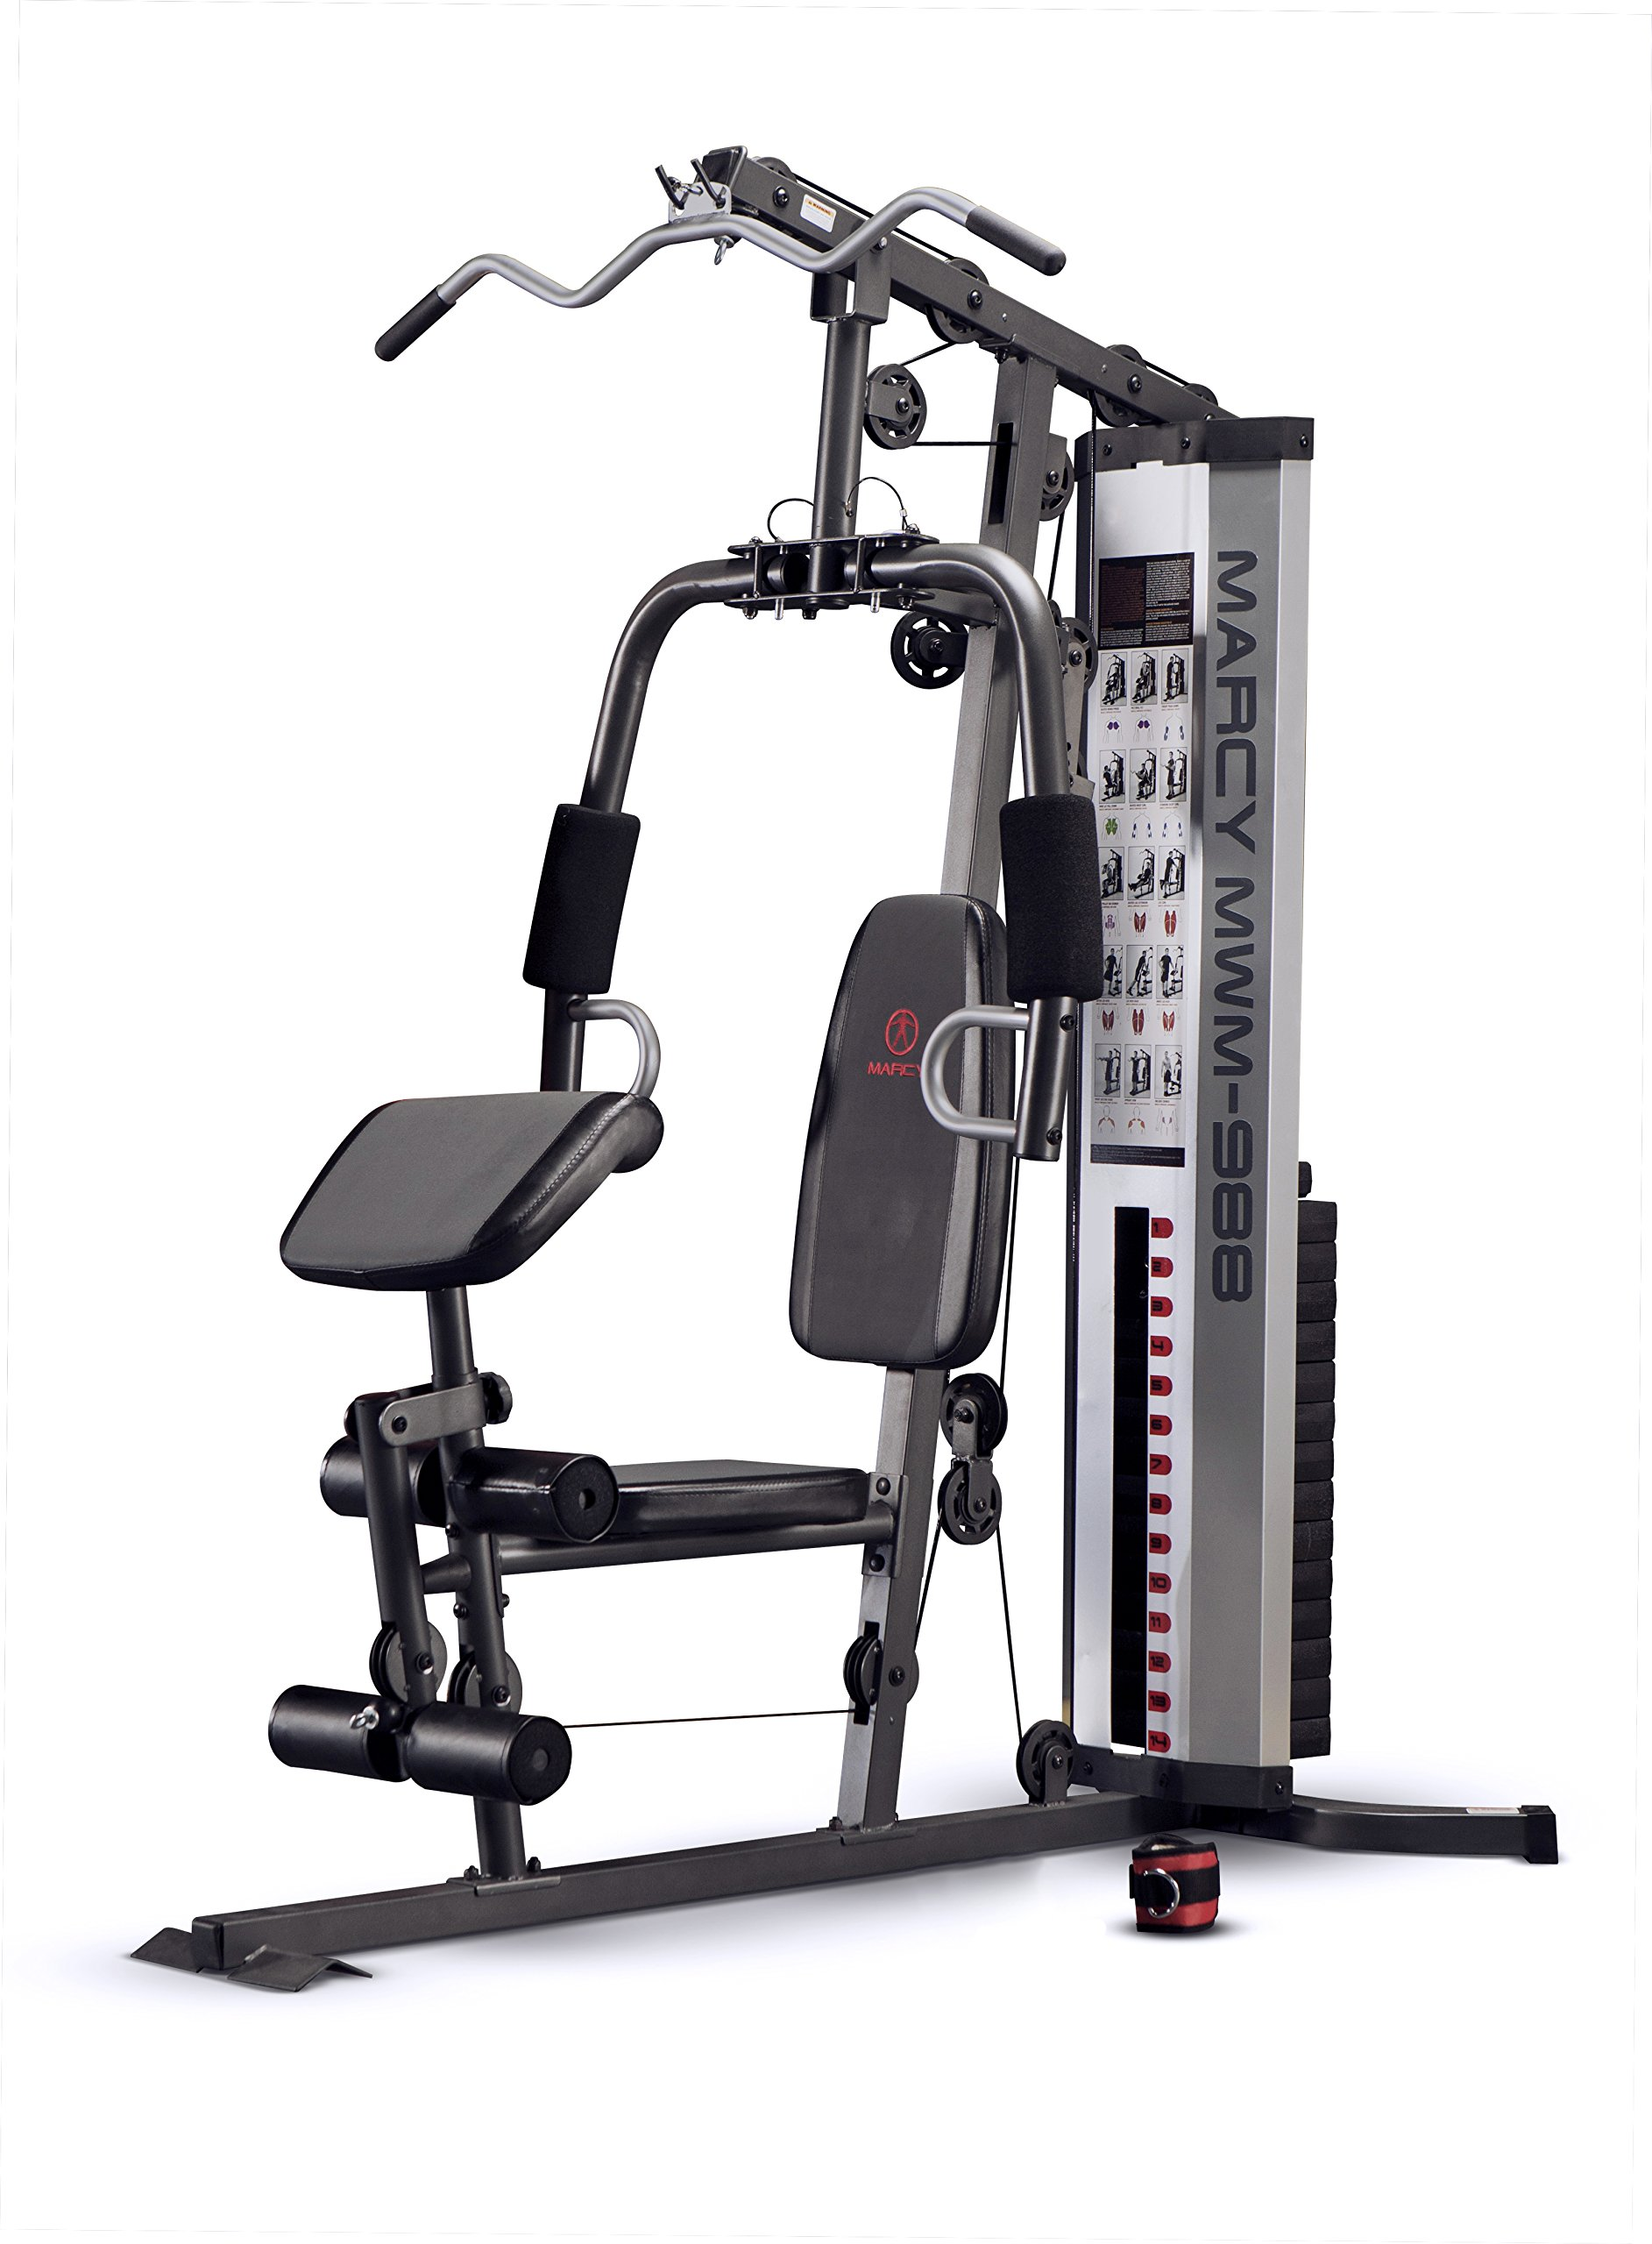 Marcy Multifunction Steel Home Gym 150lb Stack MWM-988 by Marcy